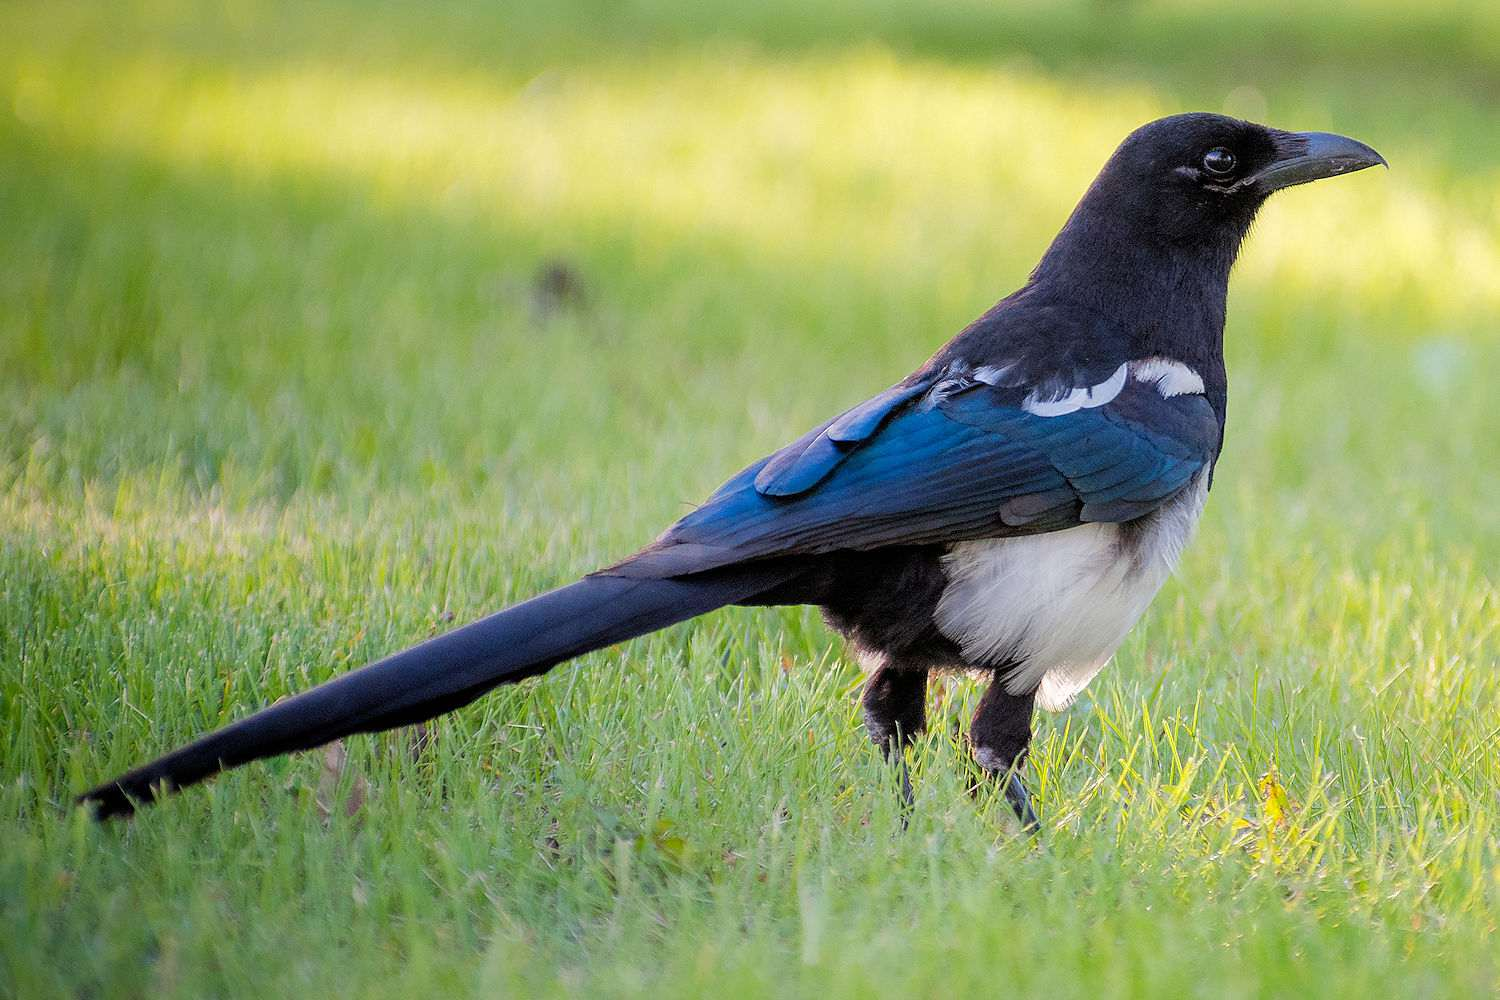 Black Billed Magpie standing in a field